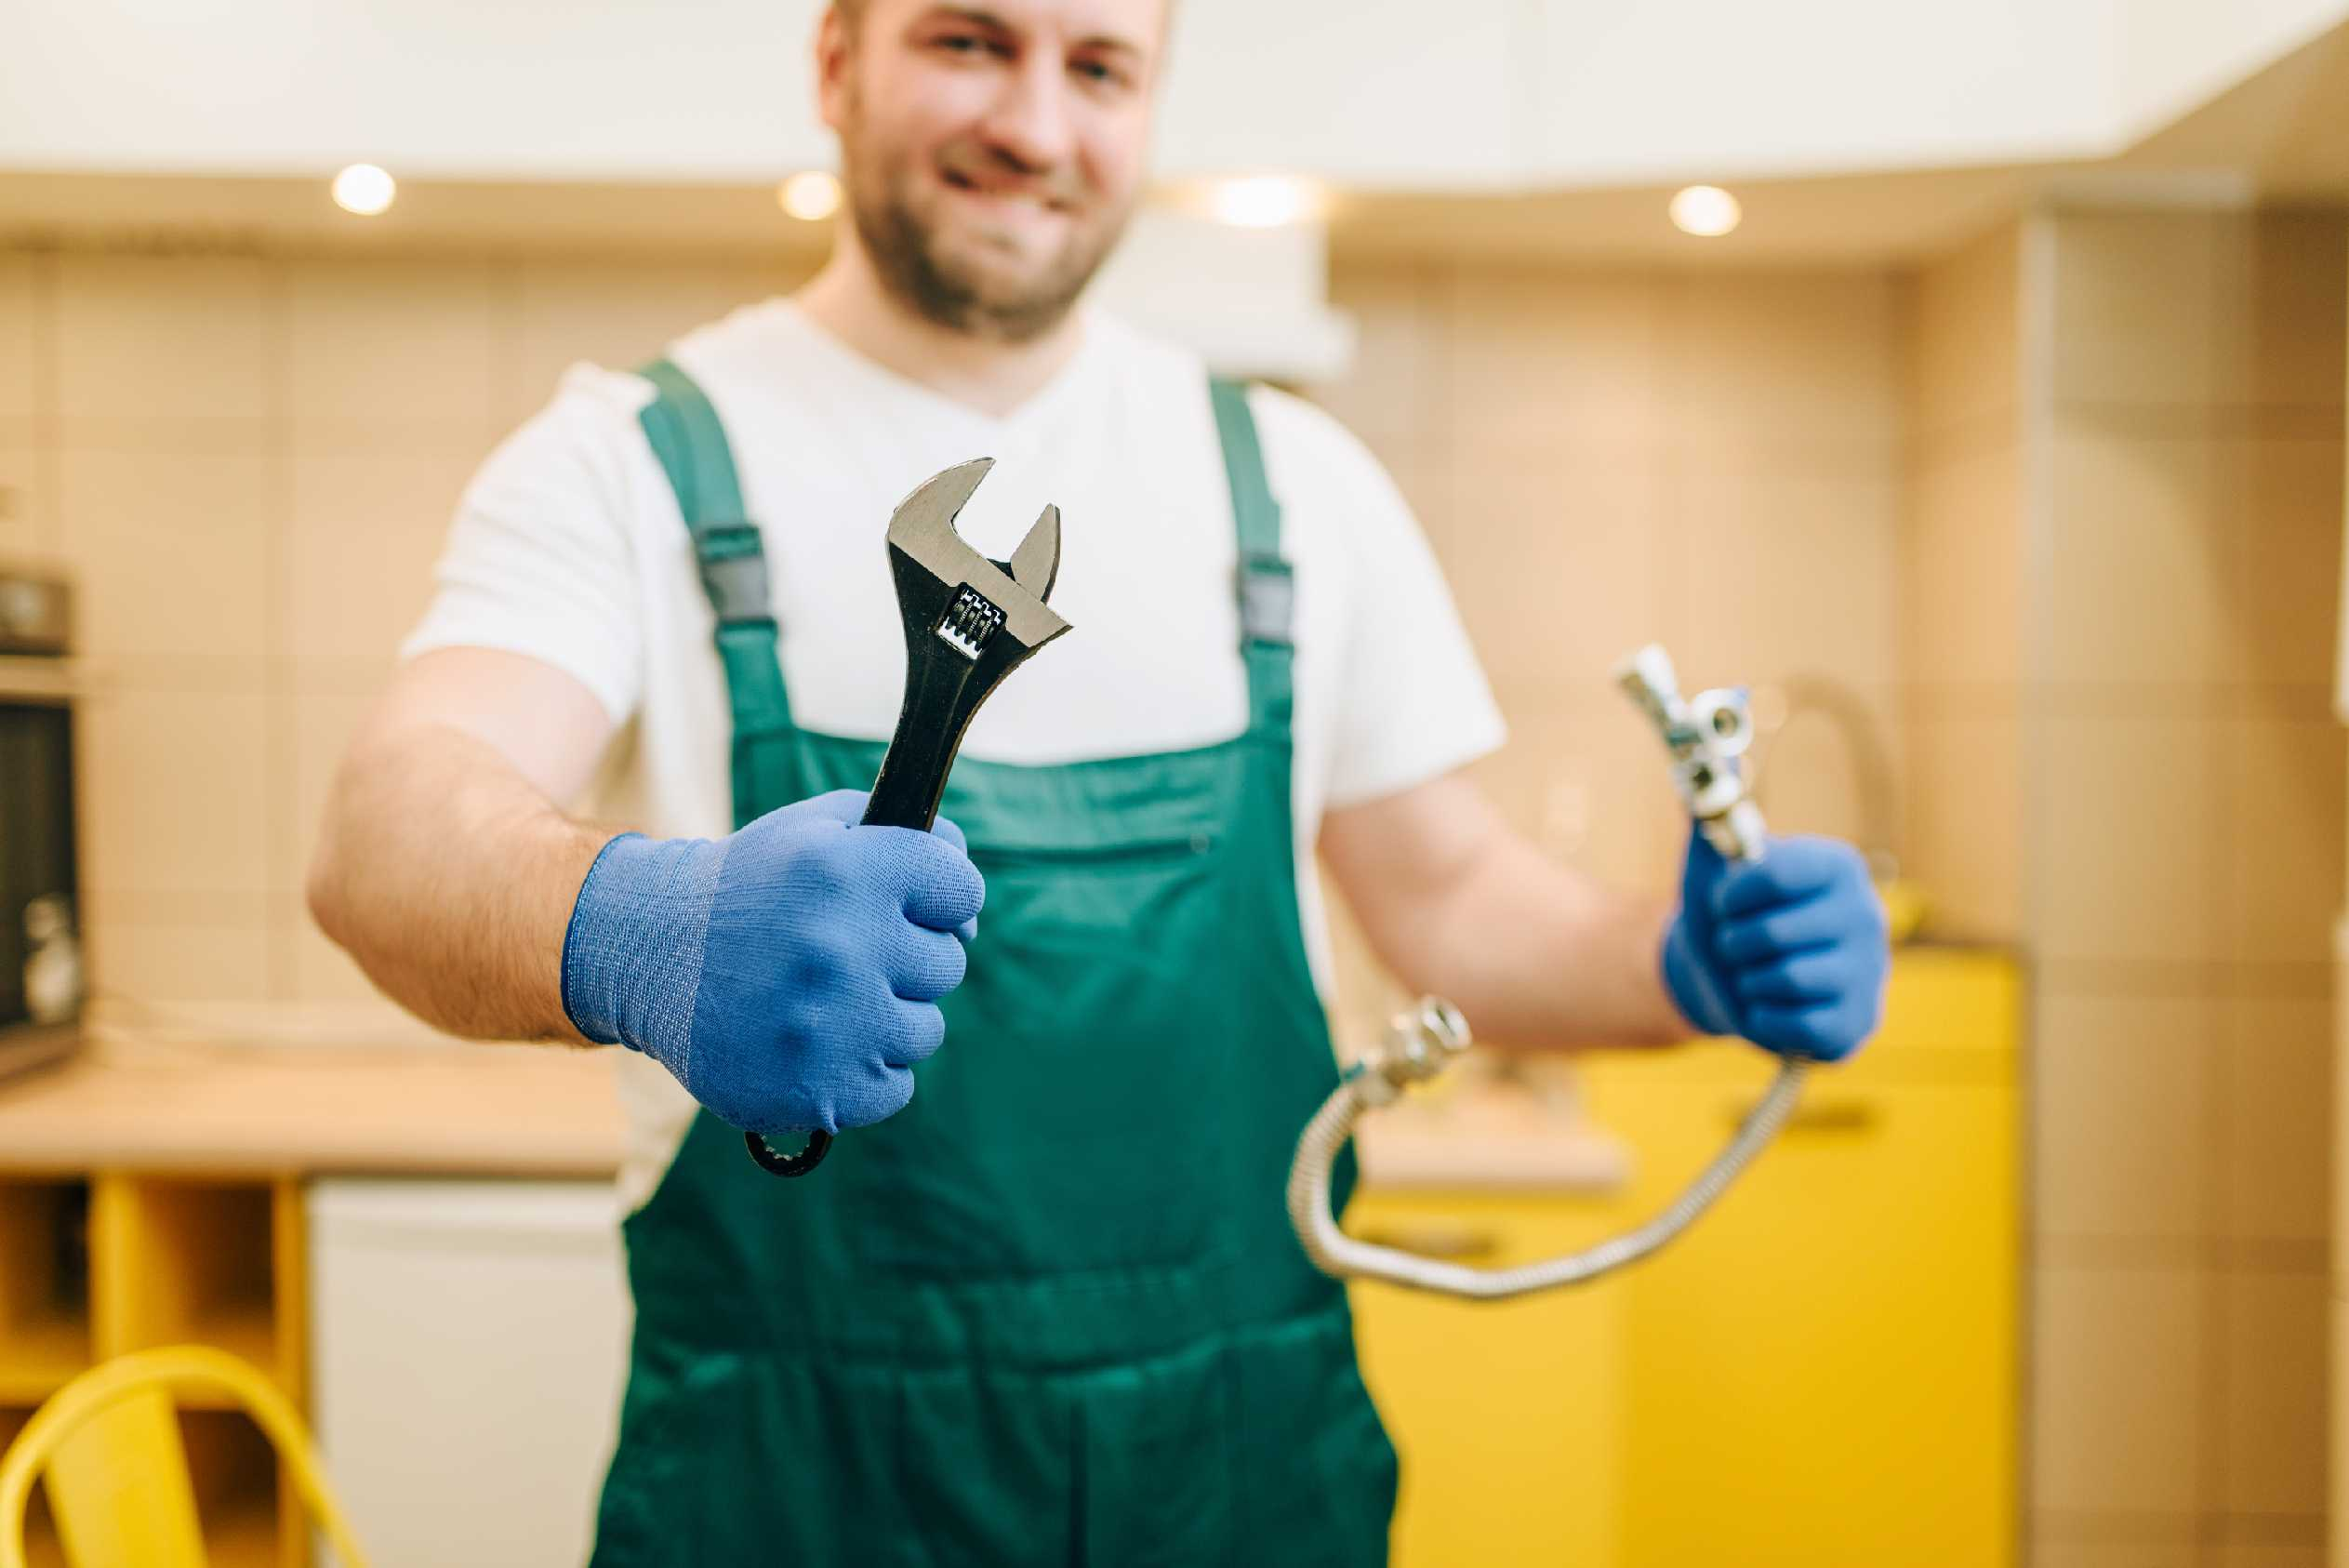 Plumbing Services in Bowral, NSW